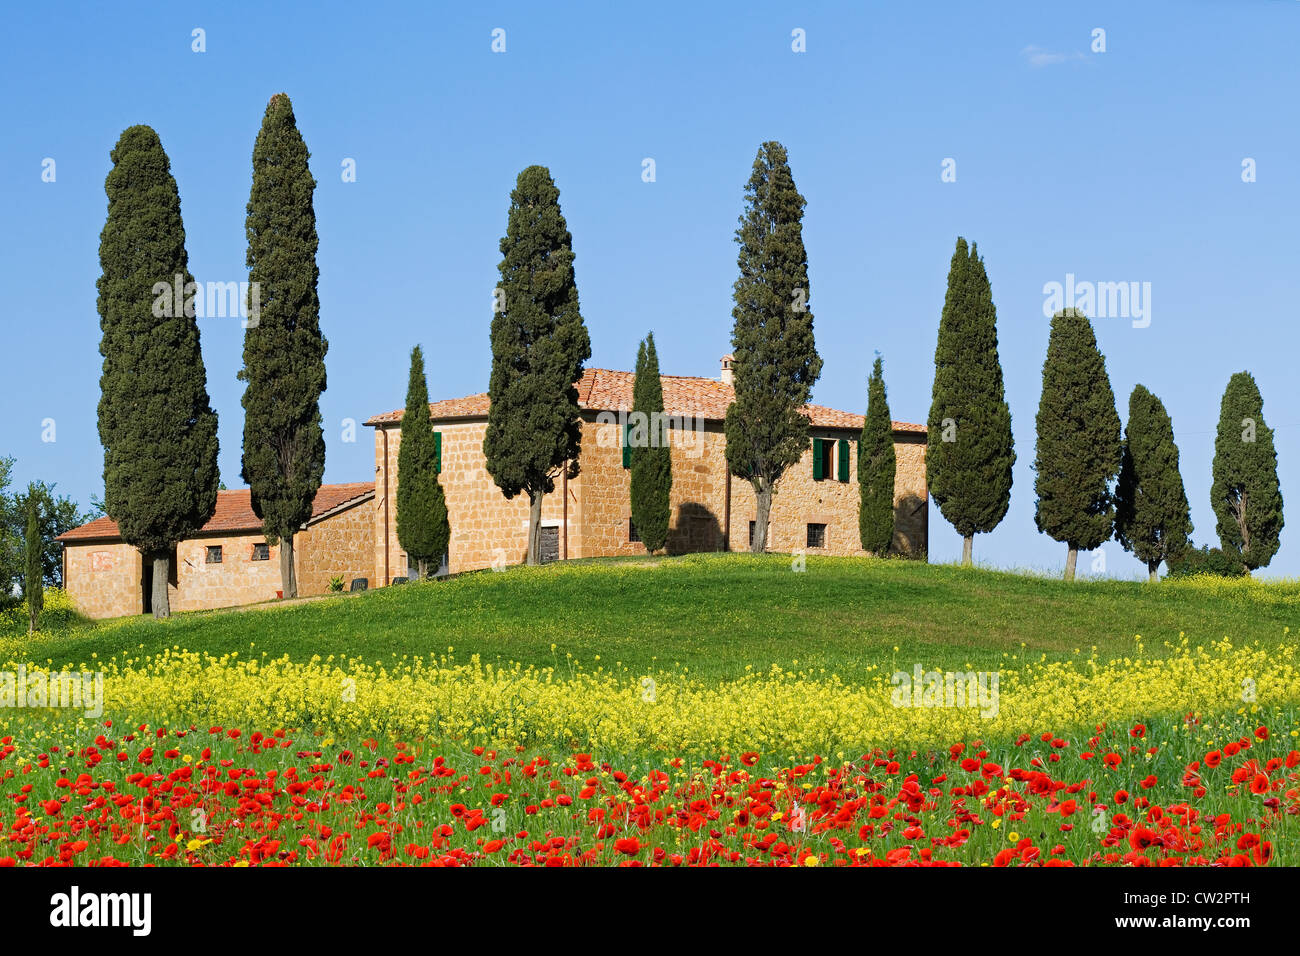 Villa with Cypress trees and Poppies near Pienza, Tuscany - Stock Image